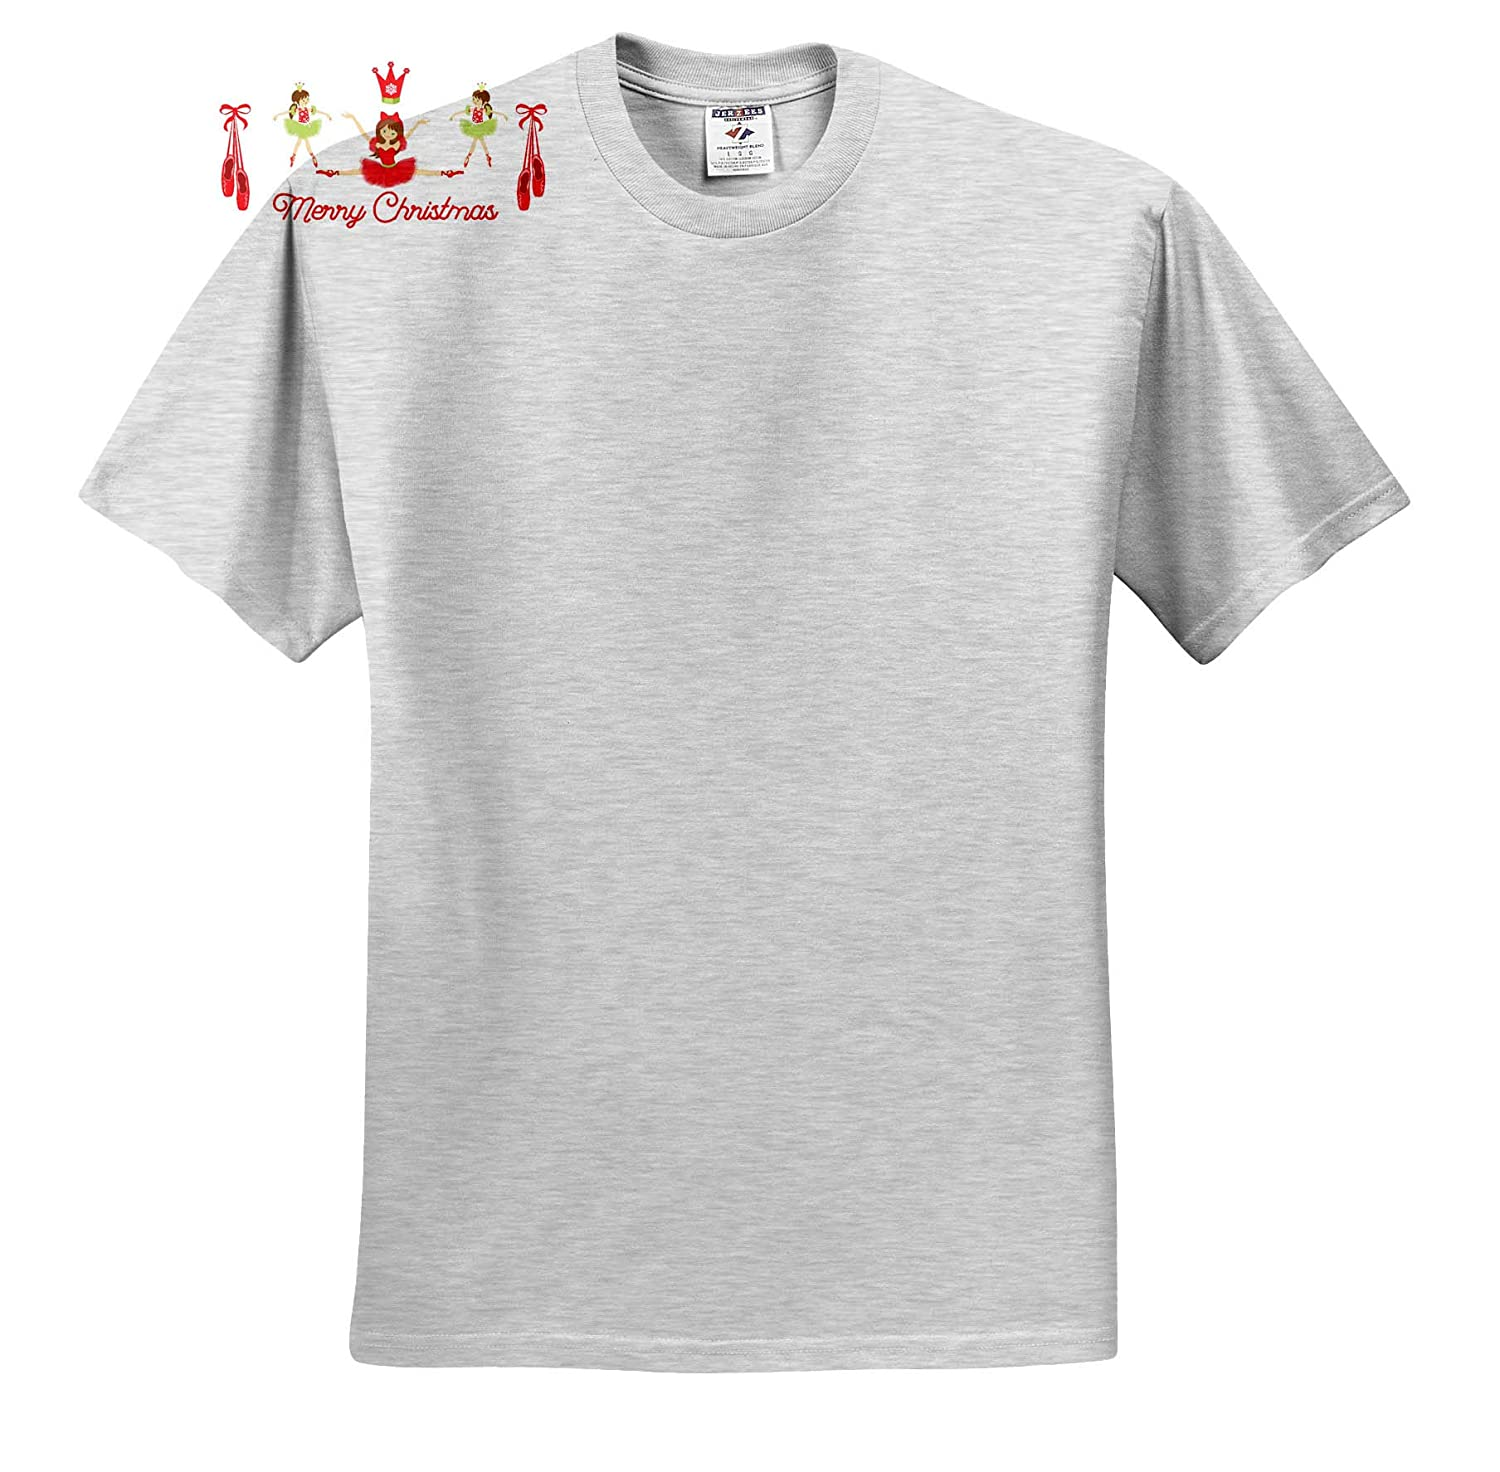 Three Ballerina Salute to Christmas in Red and Green 3dRose TNMGraphics Christmas T-Shirts